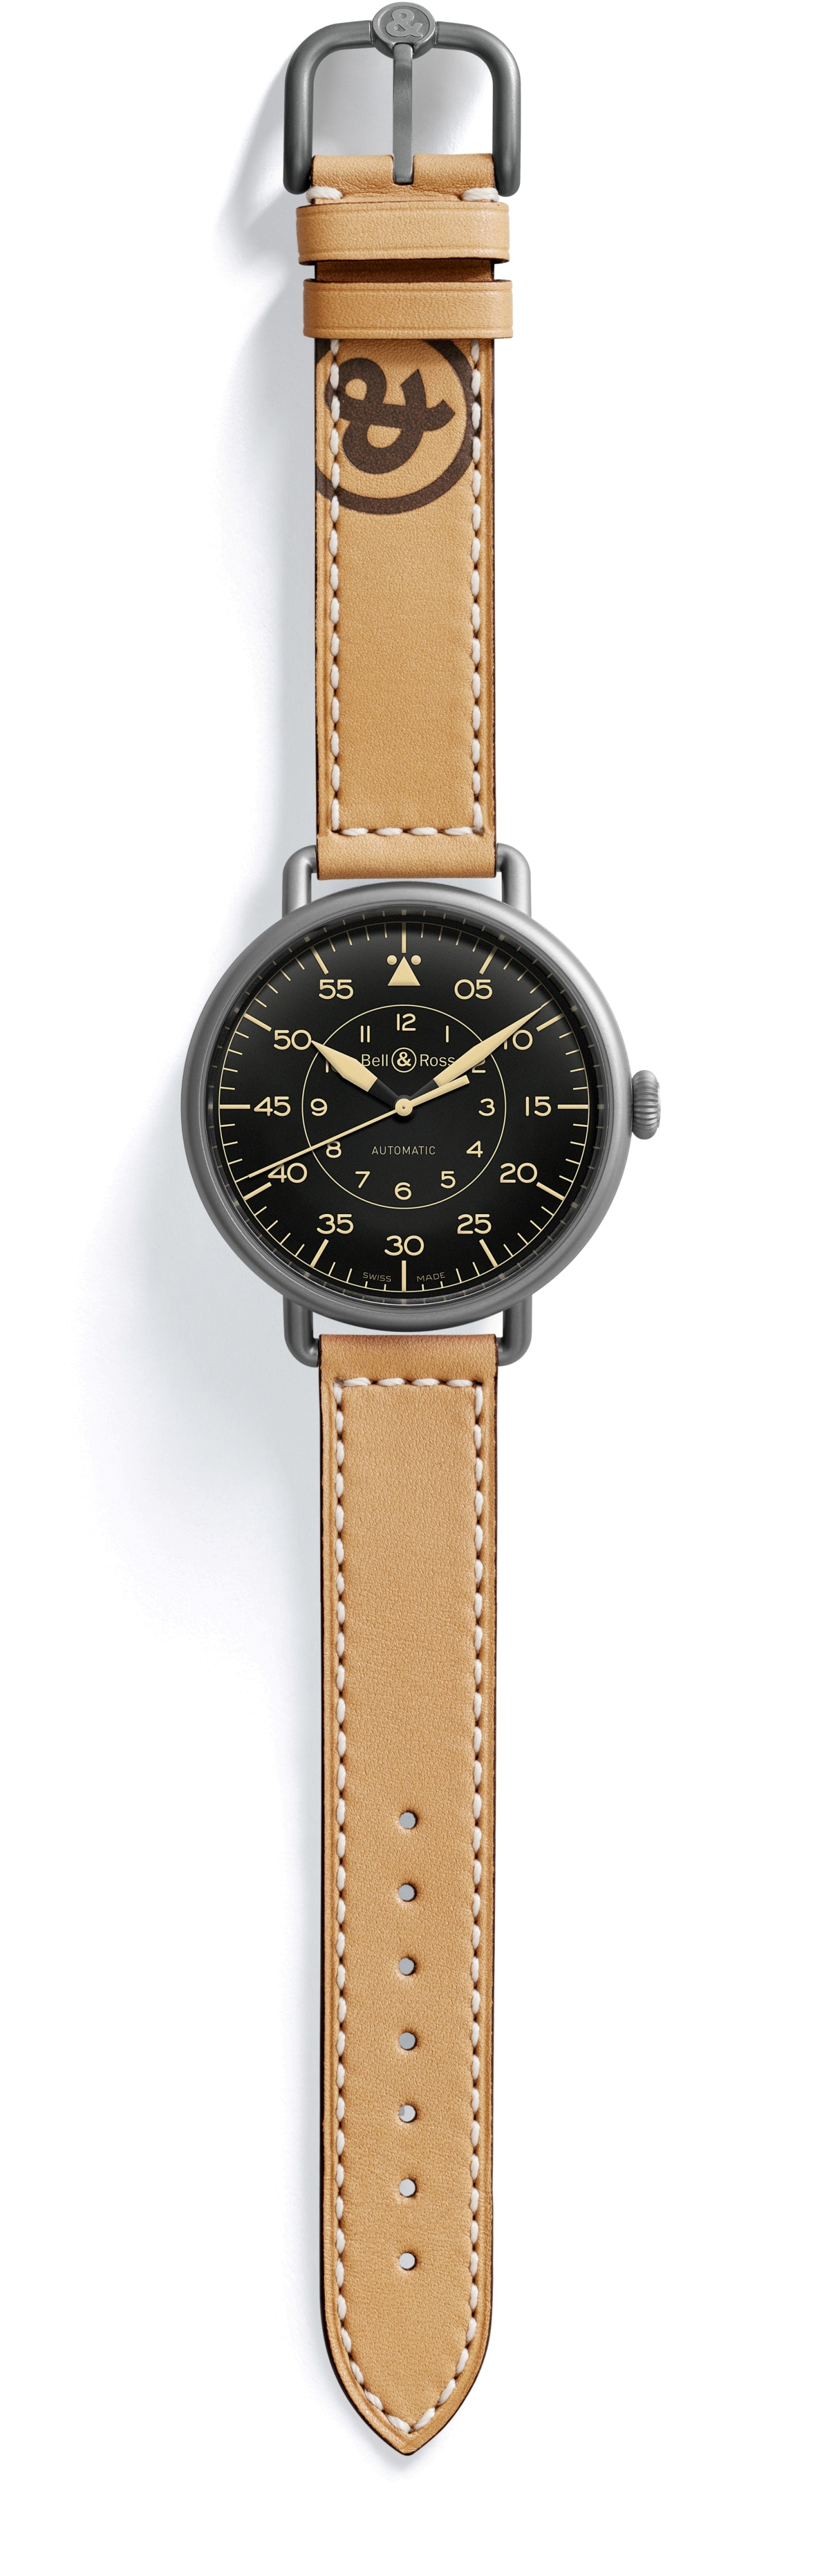 BellRoss_WW1-92-Heritage-Shadow.jpg